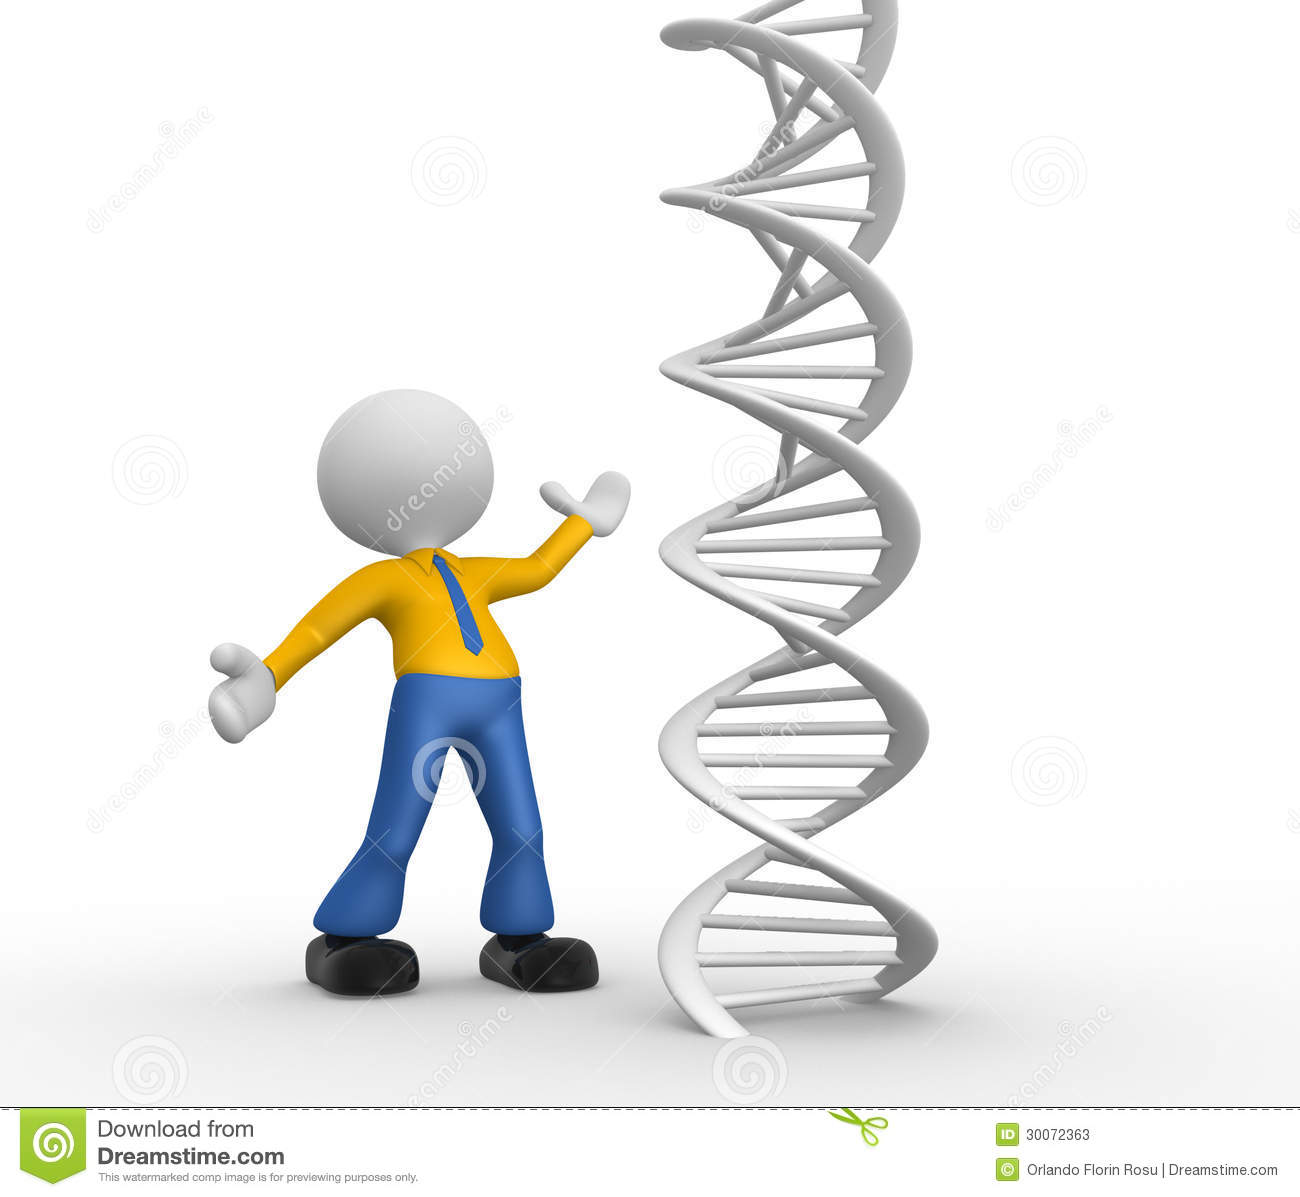 Genetic 'Adam & Eve' Study Links All Men to Man Who Lived ...